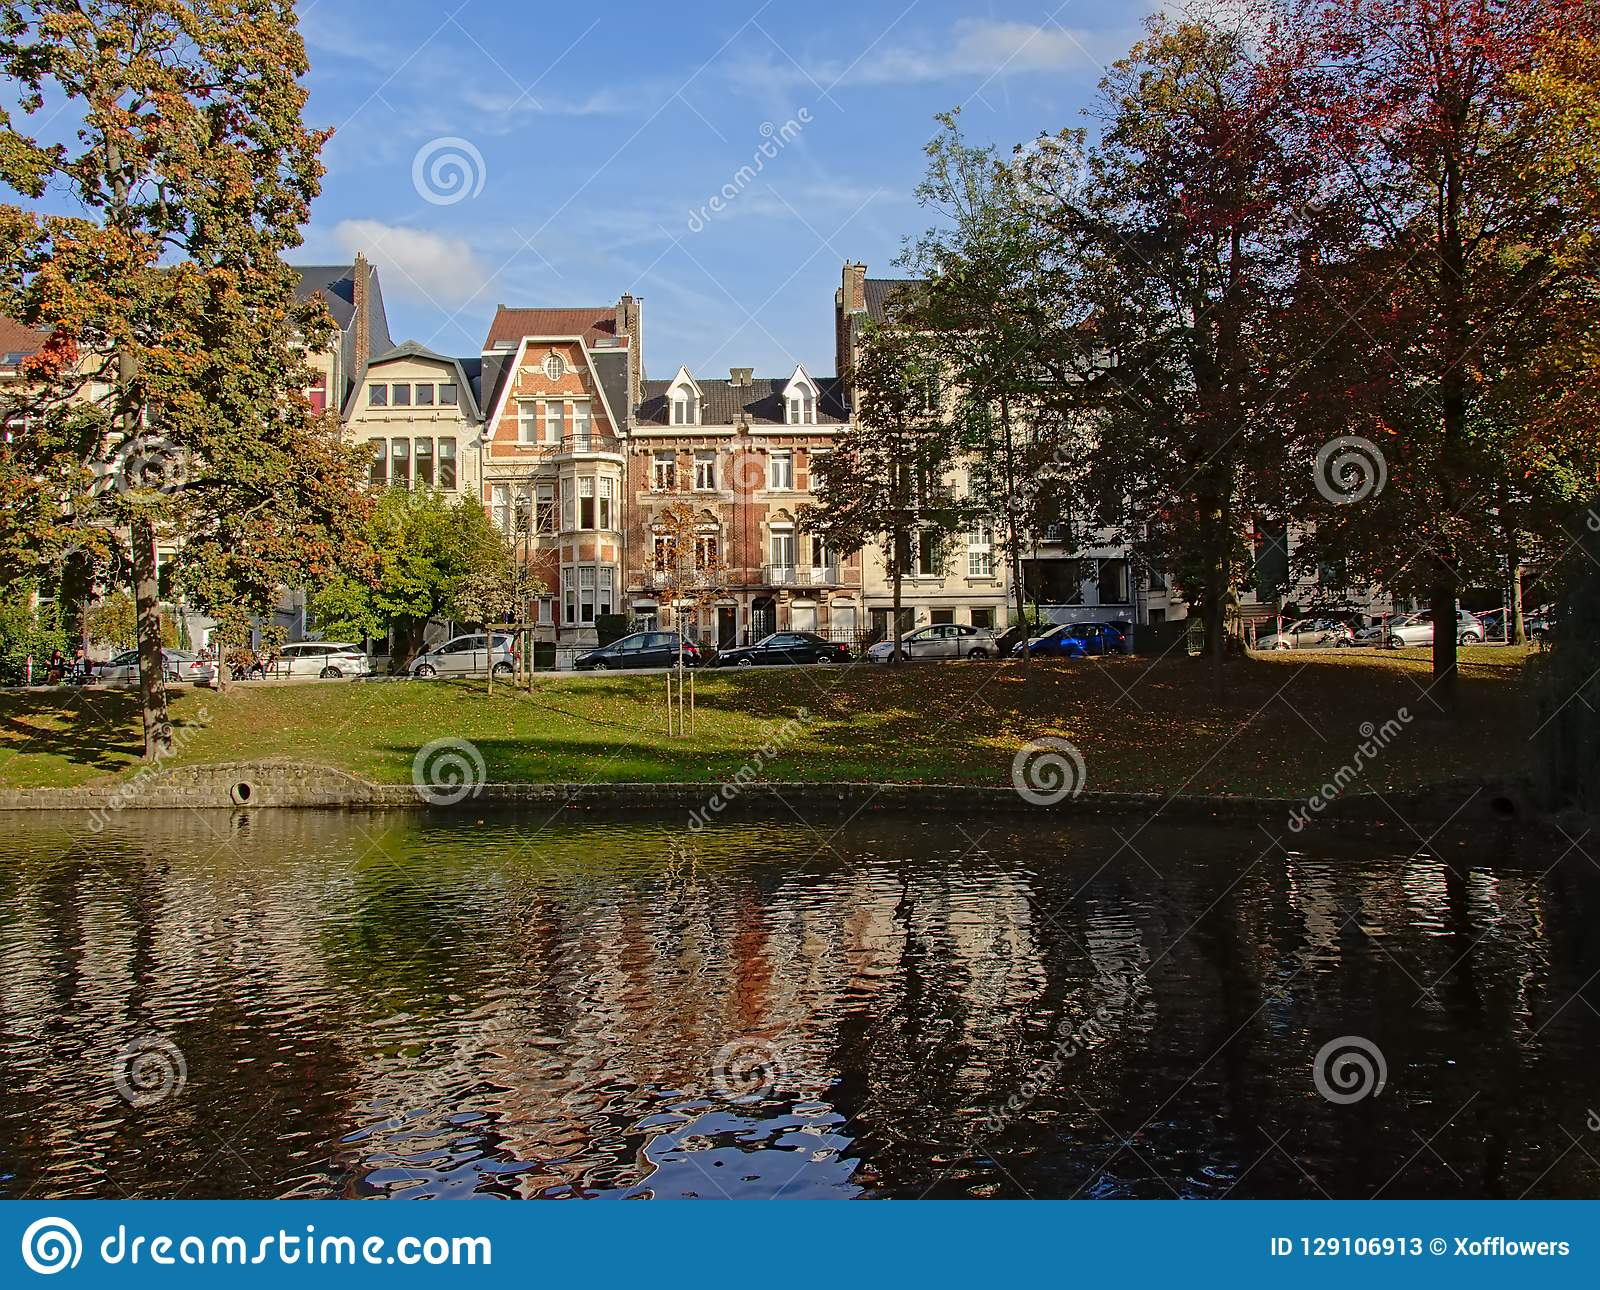 Ixelles lakes with autumn trees and houses in art nouveau style